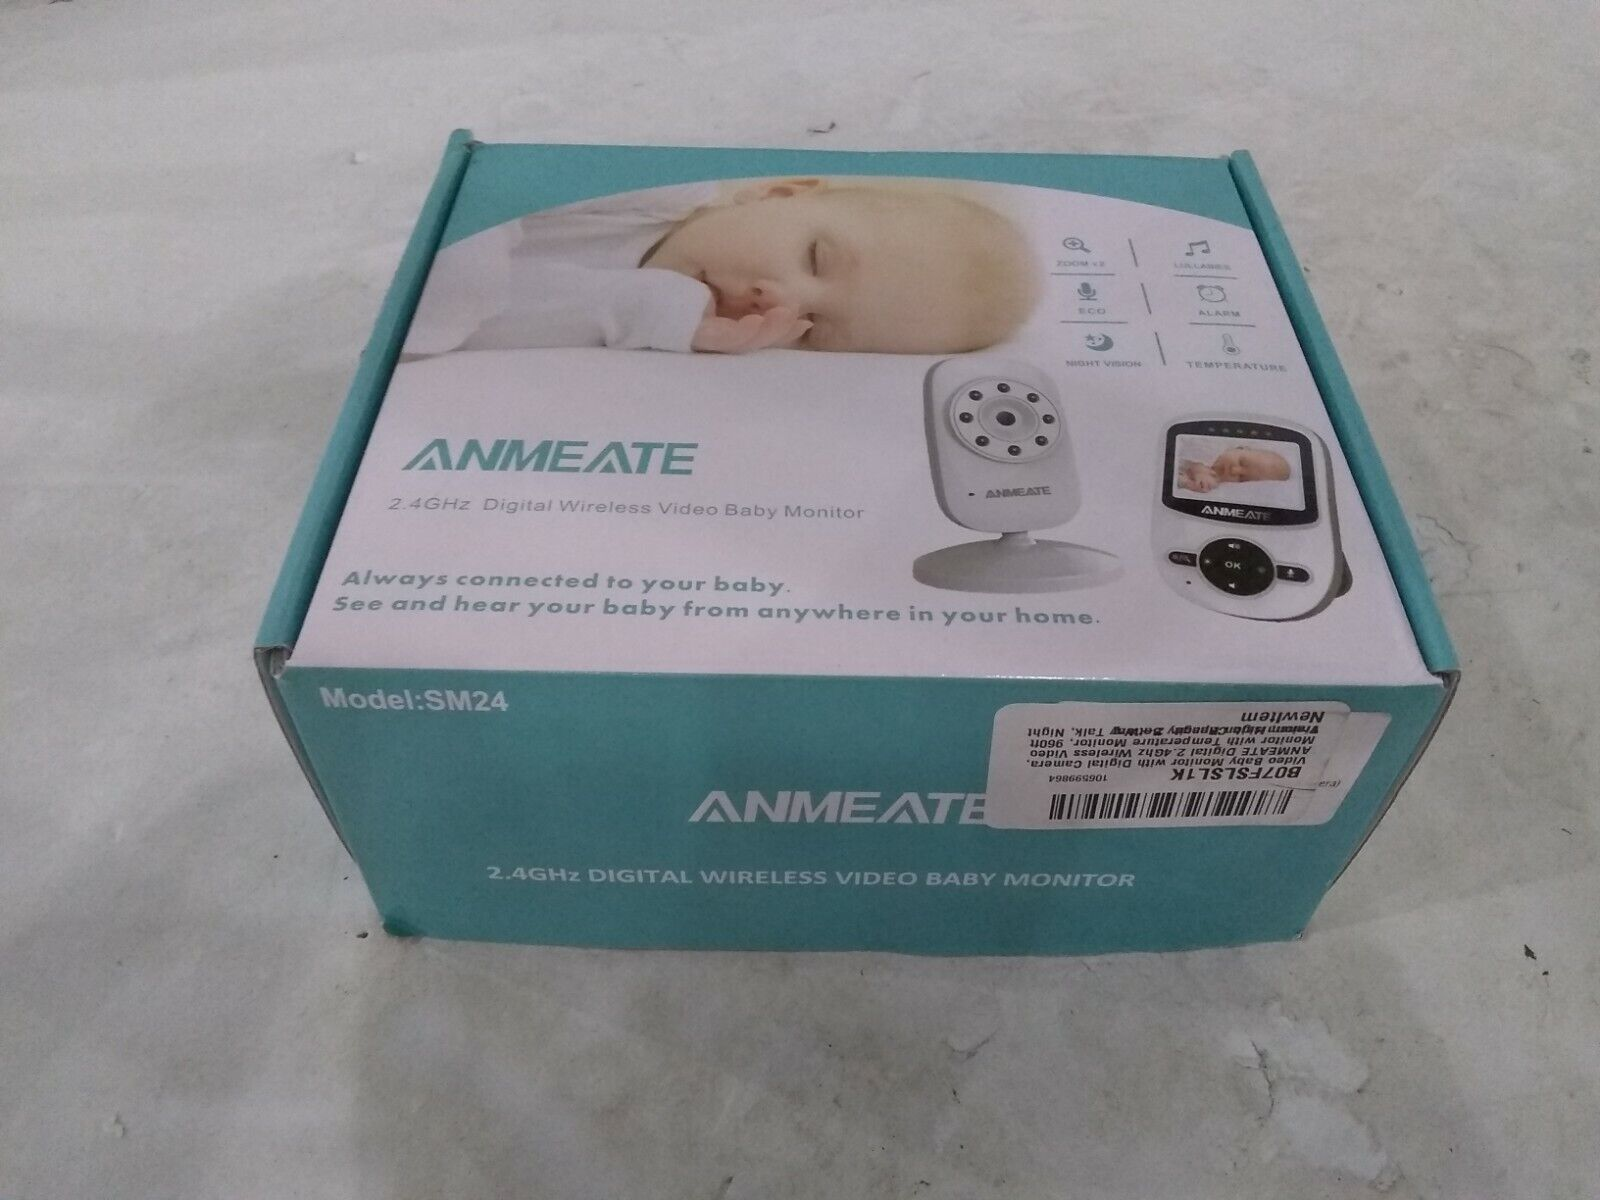 Video Baby Monitor With Digital Camera, ANMEATE Digital 2.4Ghz Wireless Camera - $36.99